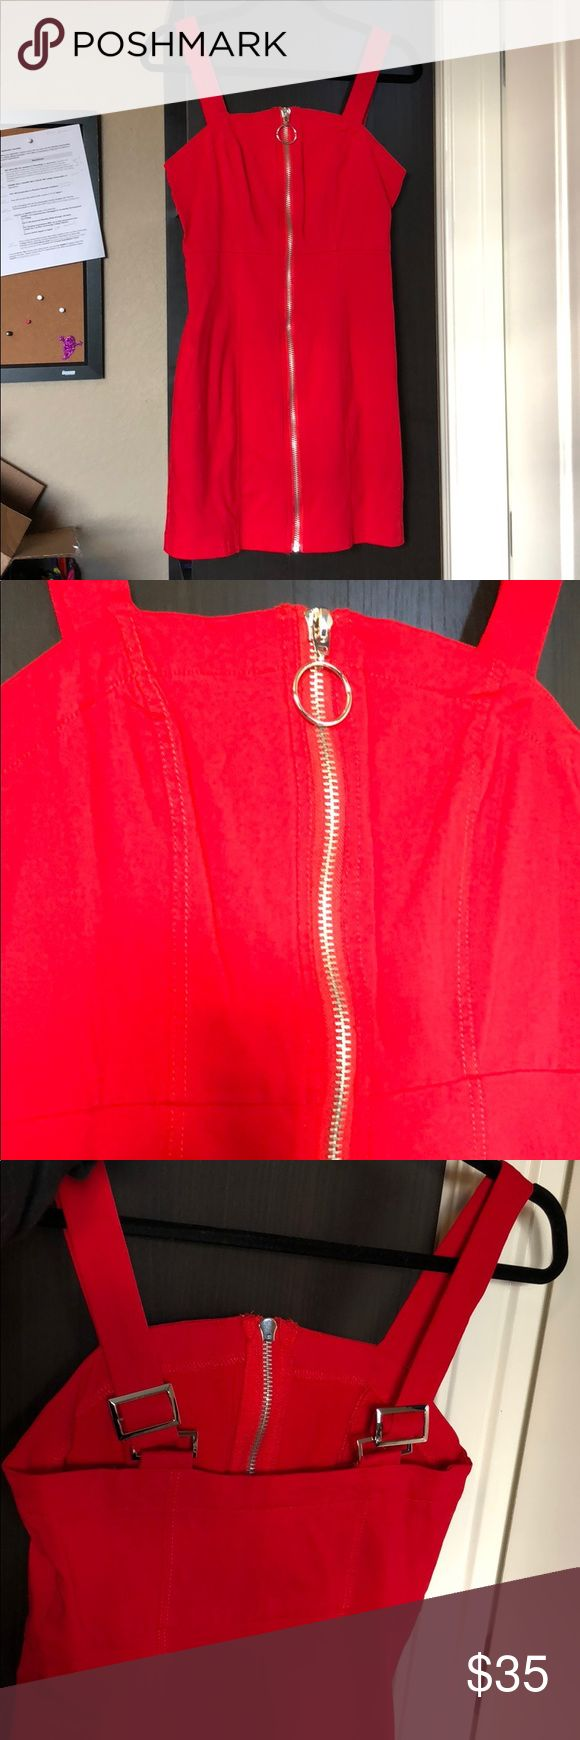 Forever 21 red zip up dress medium New without tags Forever 21 Dresses Mini